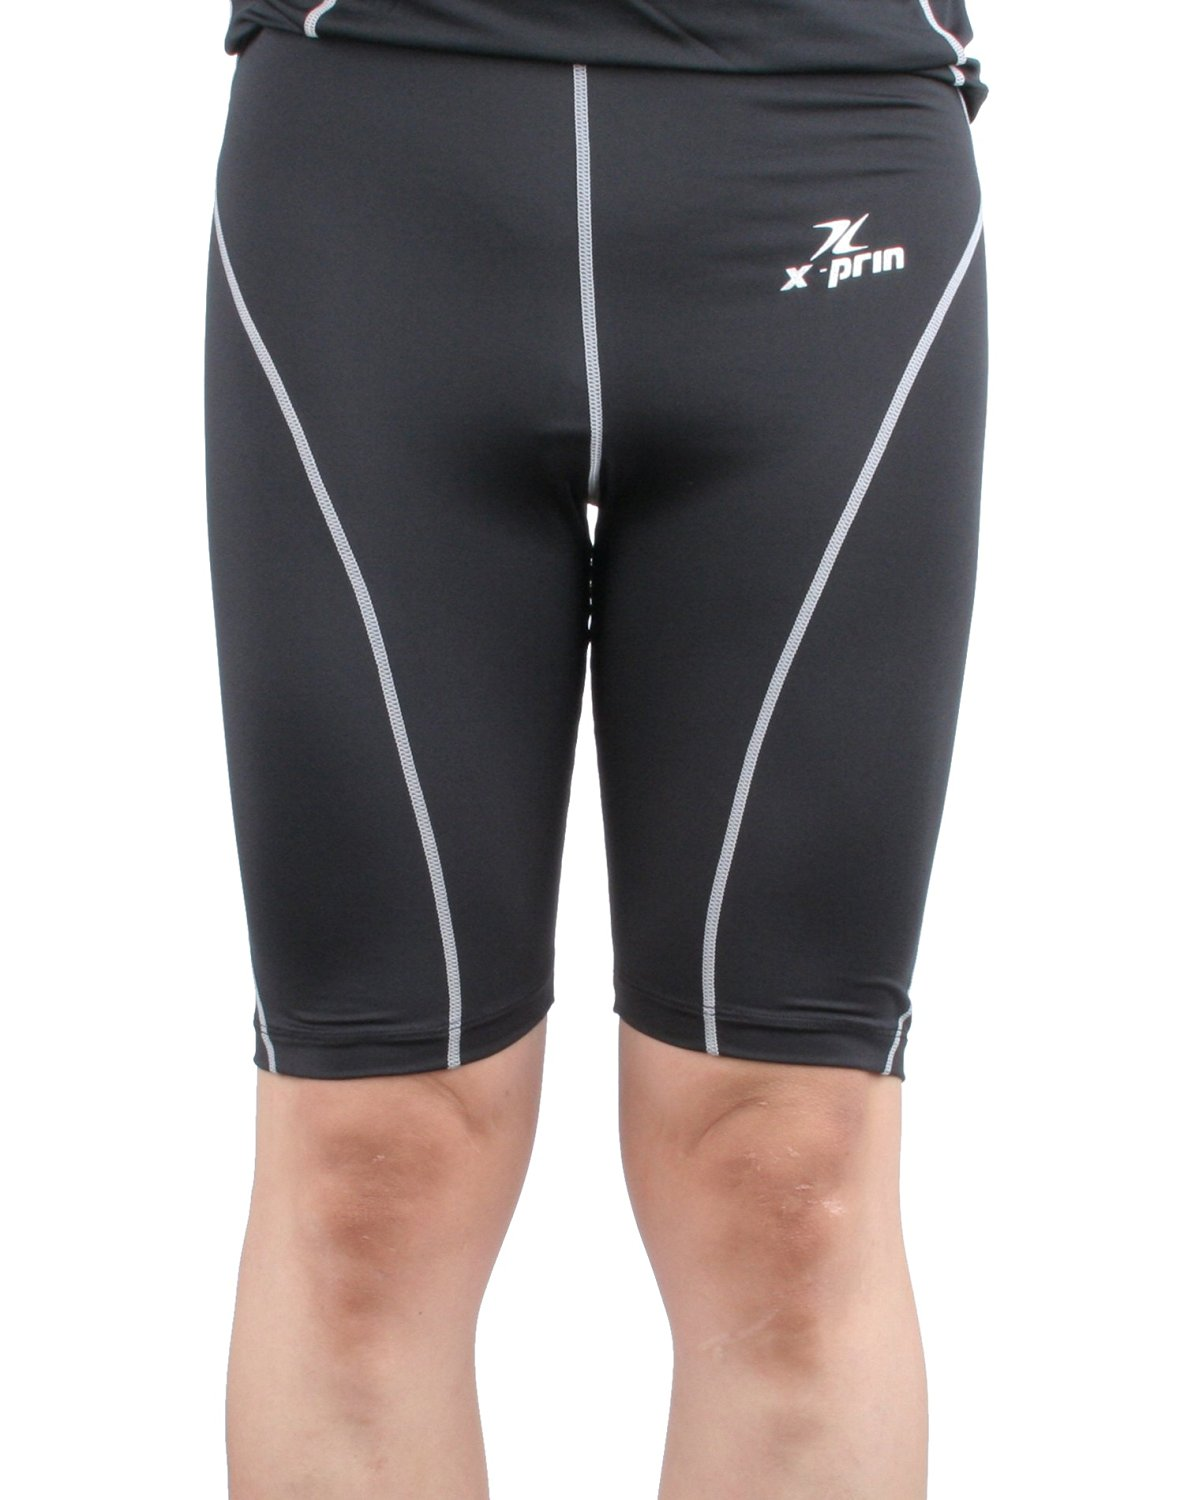 X-Prin XP402 Short Pants Base Layer compression performance Leggings Sports wear